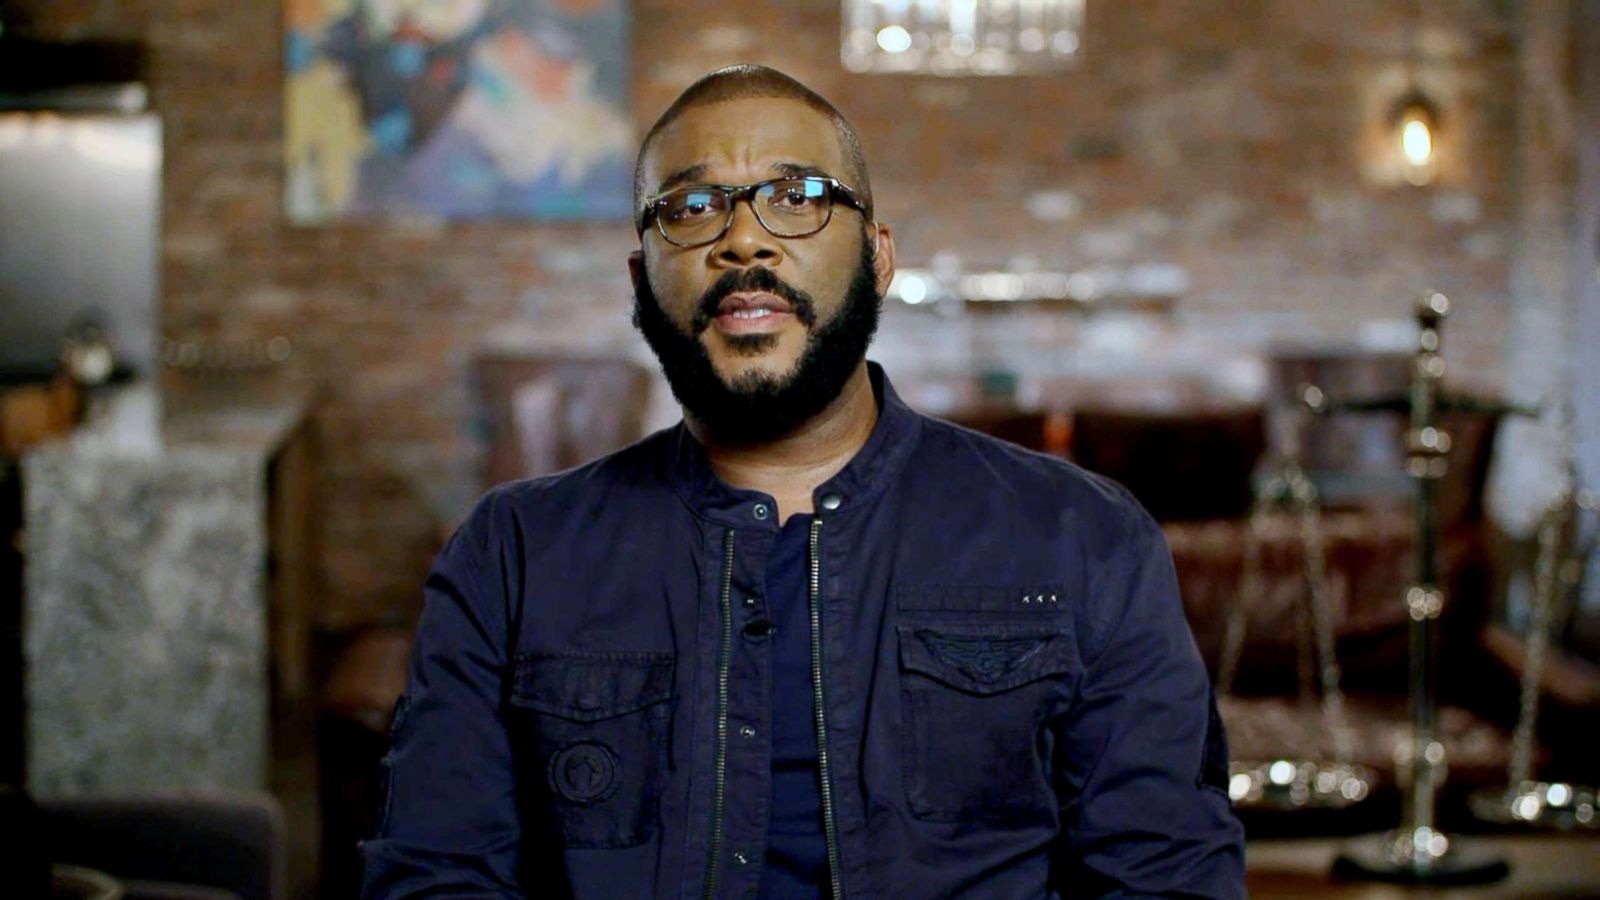 Tyler Perry on getting involved in missing men's cold cases: 'This